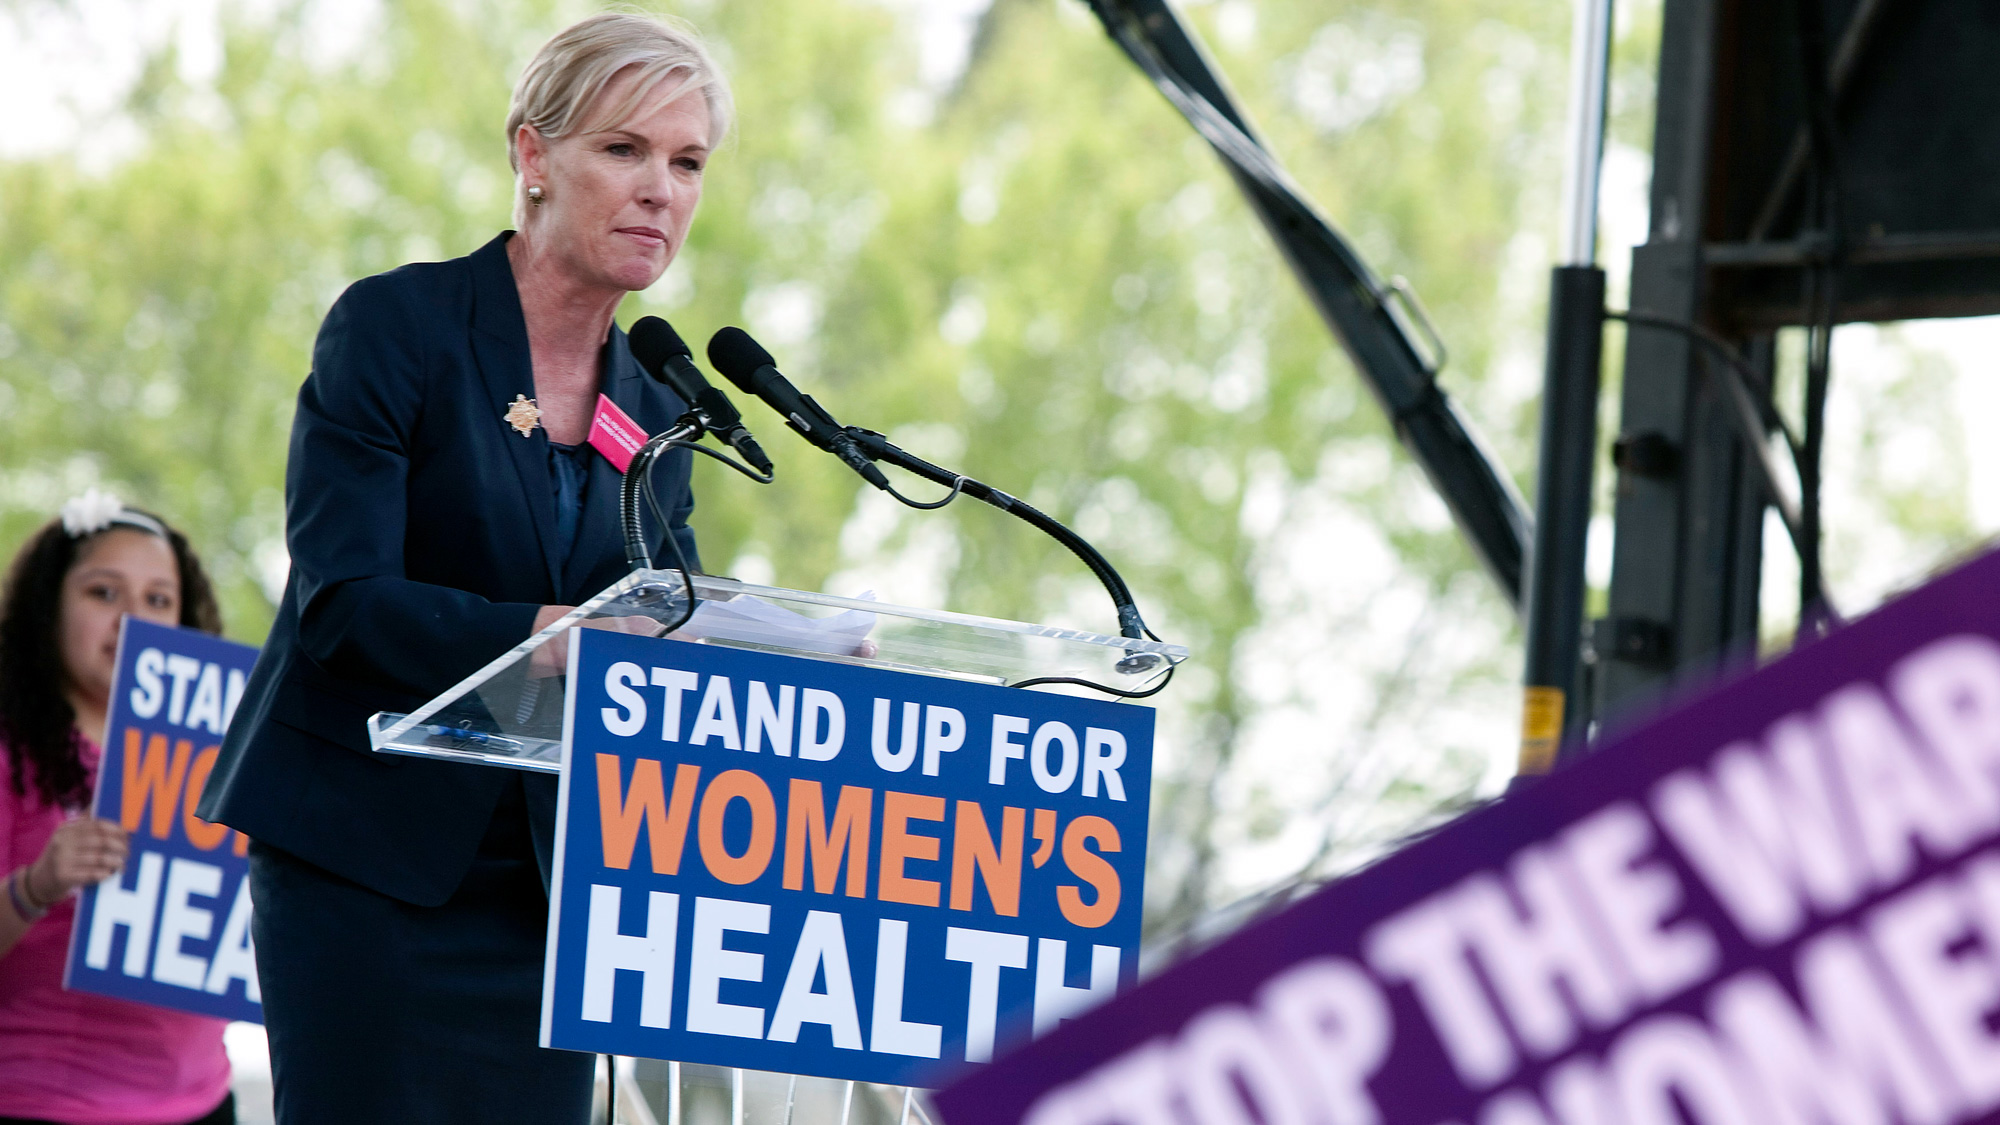 """A blond woman is speaking into a microphone at a podium with a sign on the front that says """"Stand up for women"""""""